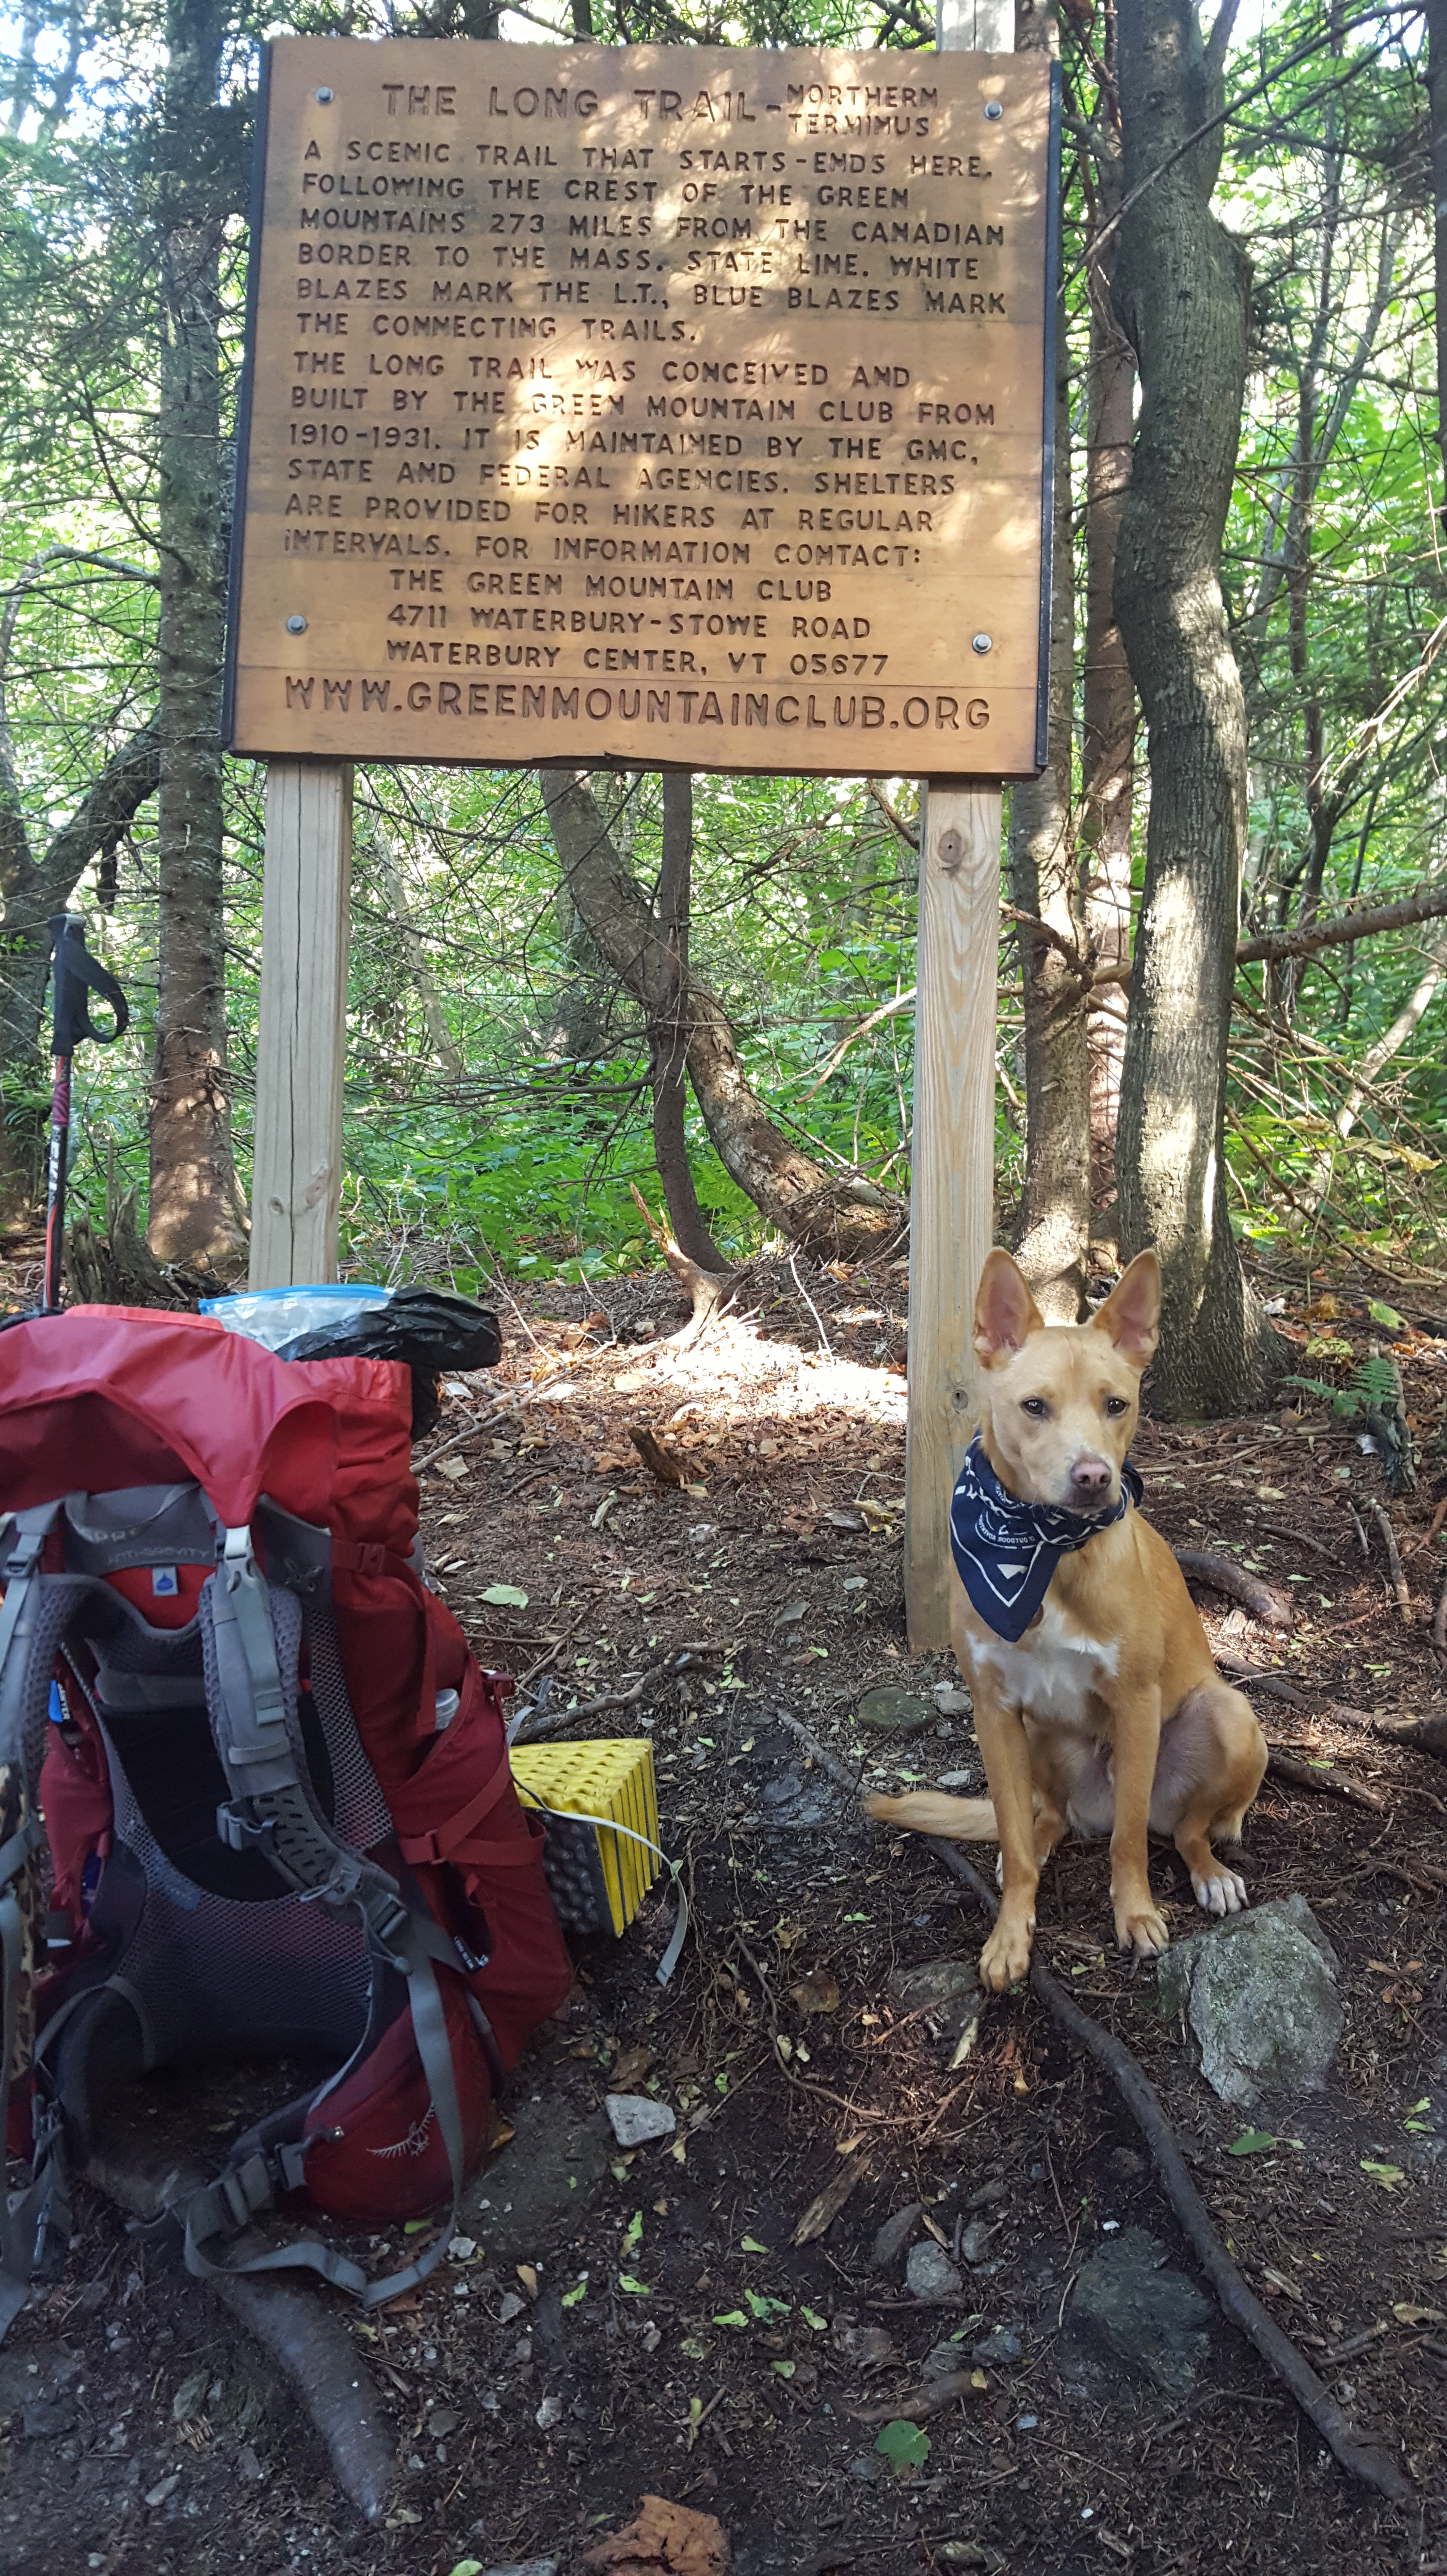 Final photo of Benny the hiking dog on the Vermont Long Trail at the border of Canada in Northern Vermont.